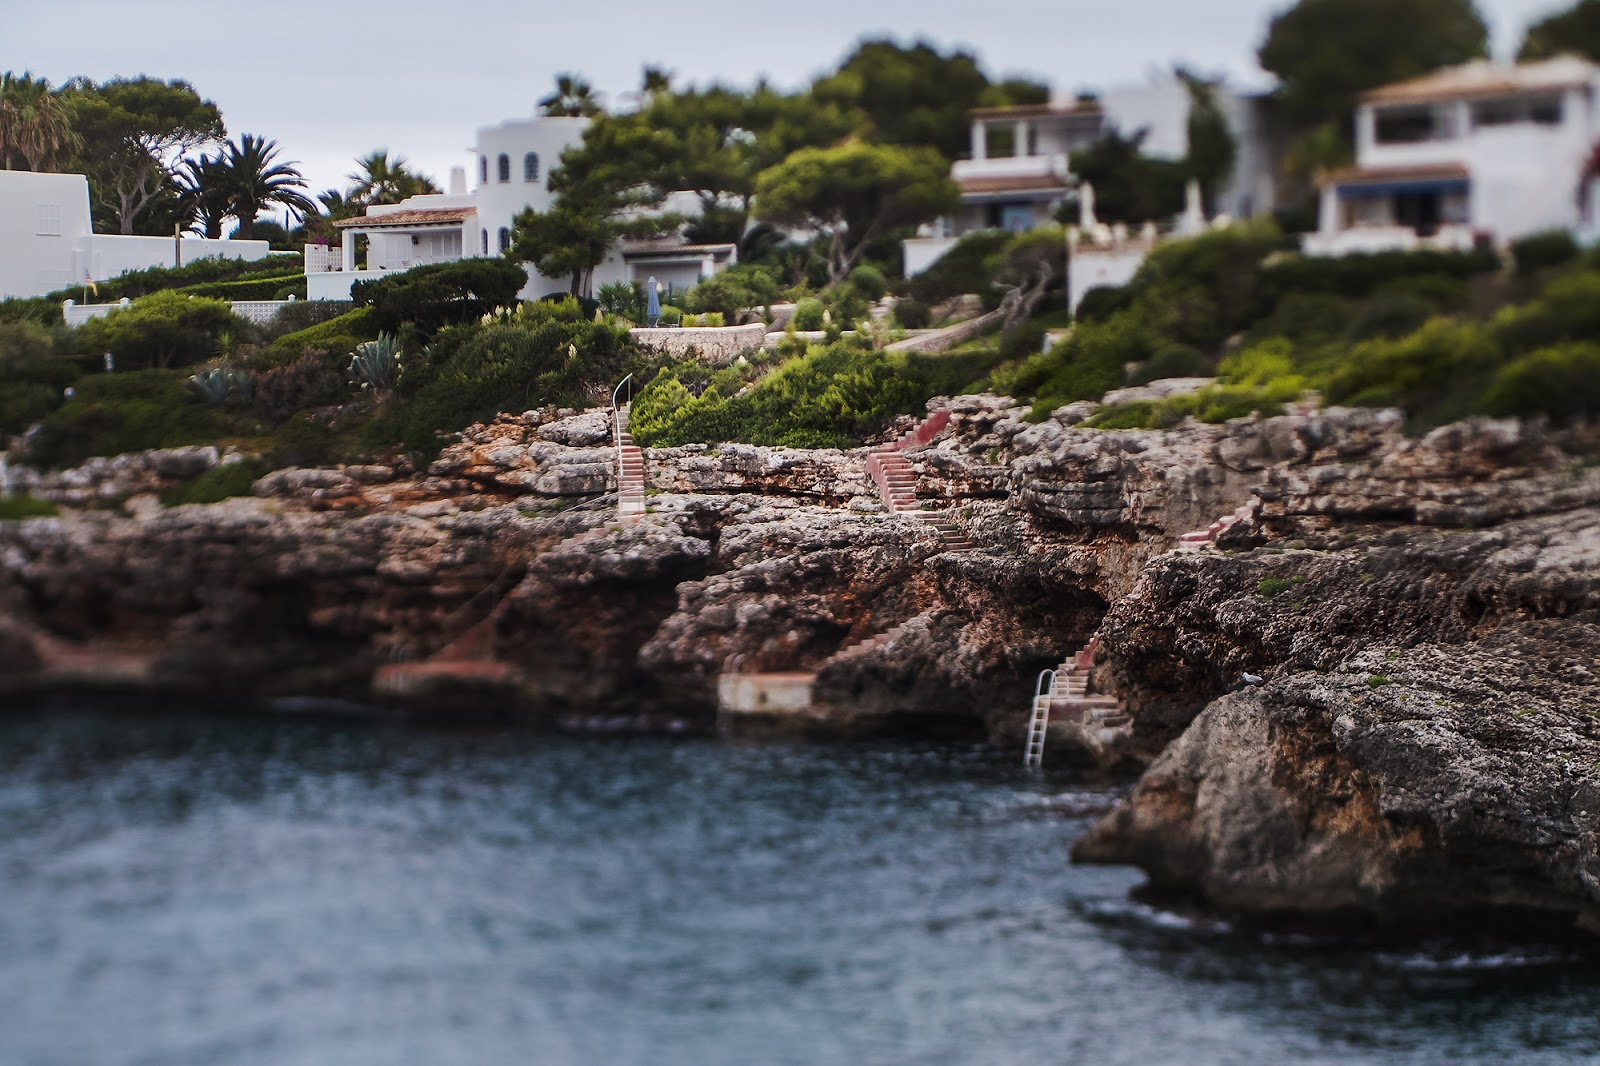 Lensbaby edge 80 Image of the island Mallorca by Willie Kers